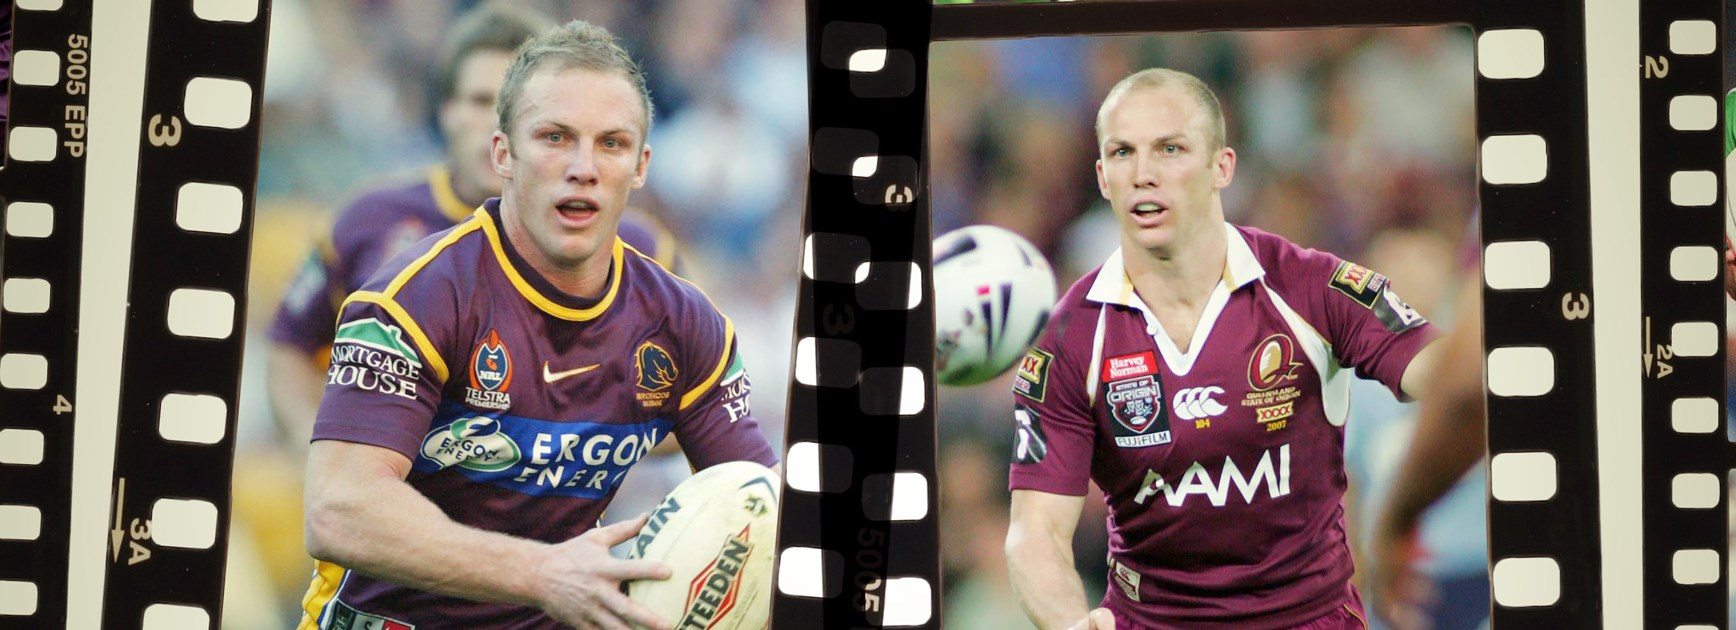 Simply The Best: Lockyer thrilled to be locked in as top five-eighth